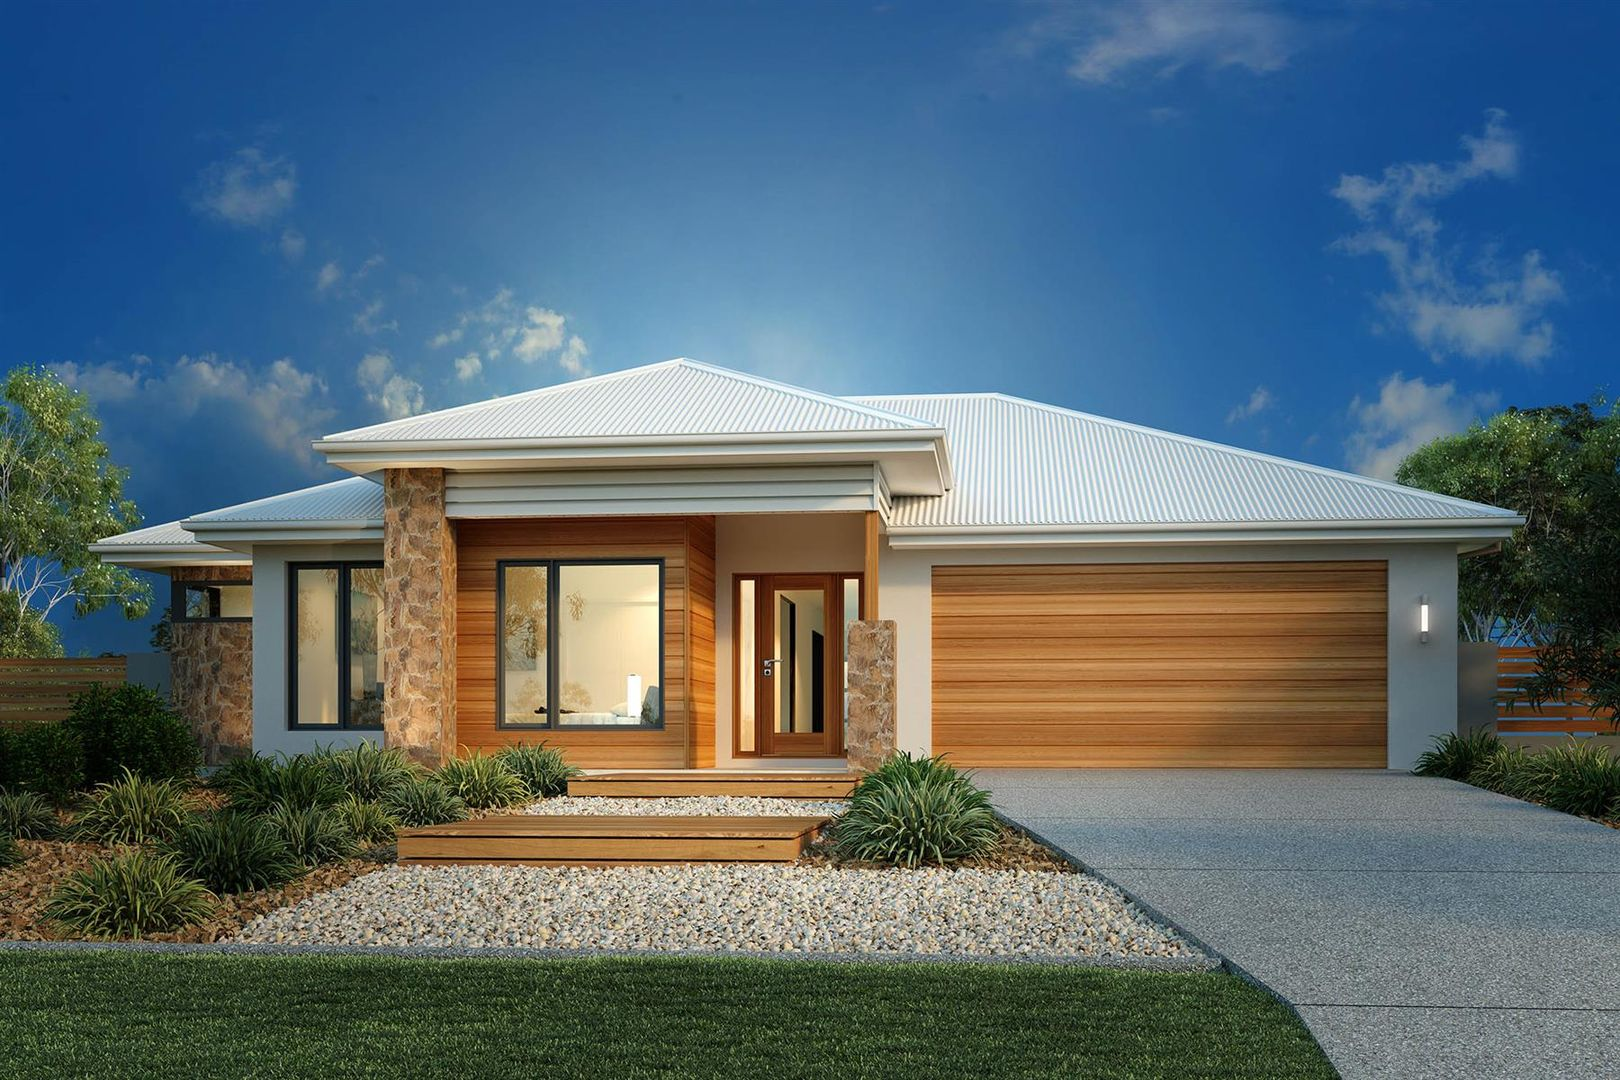 Lot 27 Vue Court, Daylesford VIC 3460, Image 0